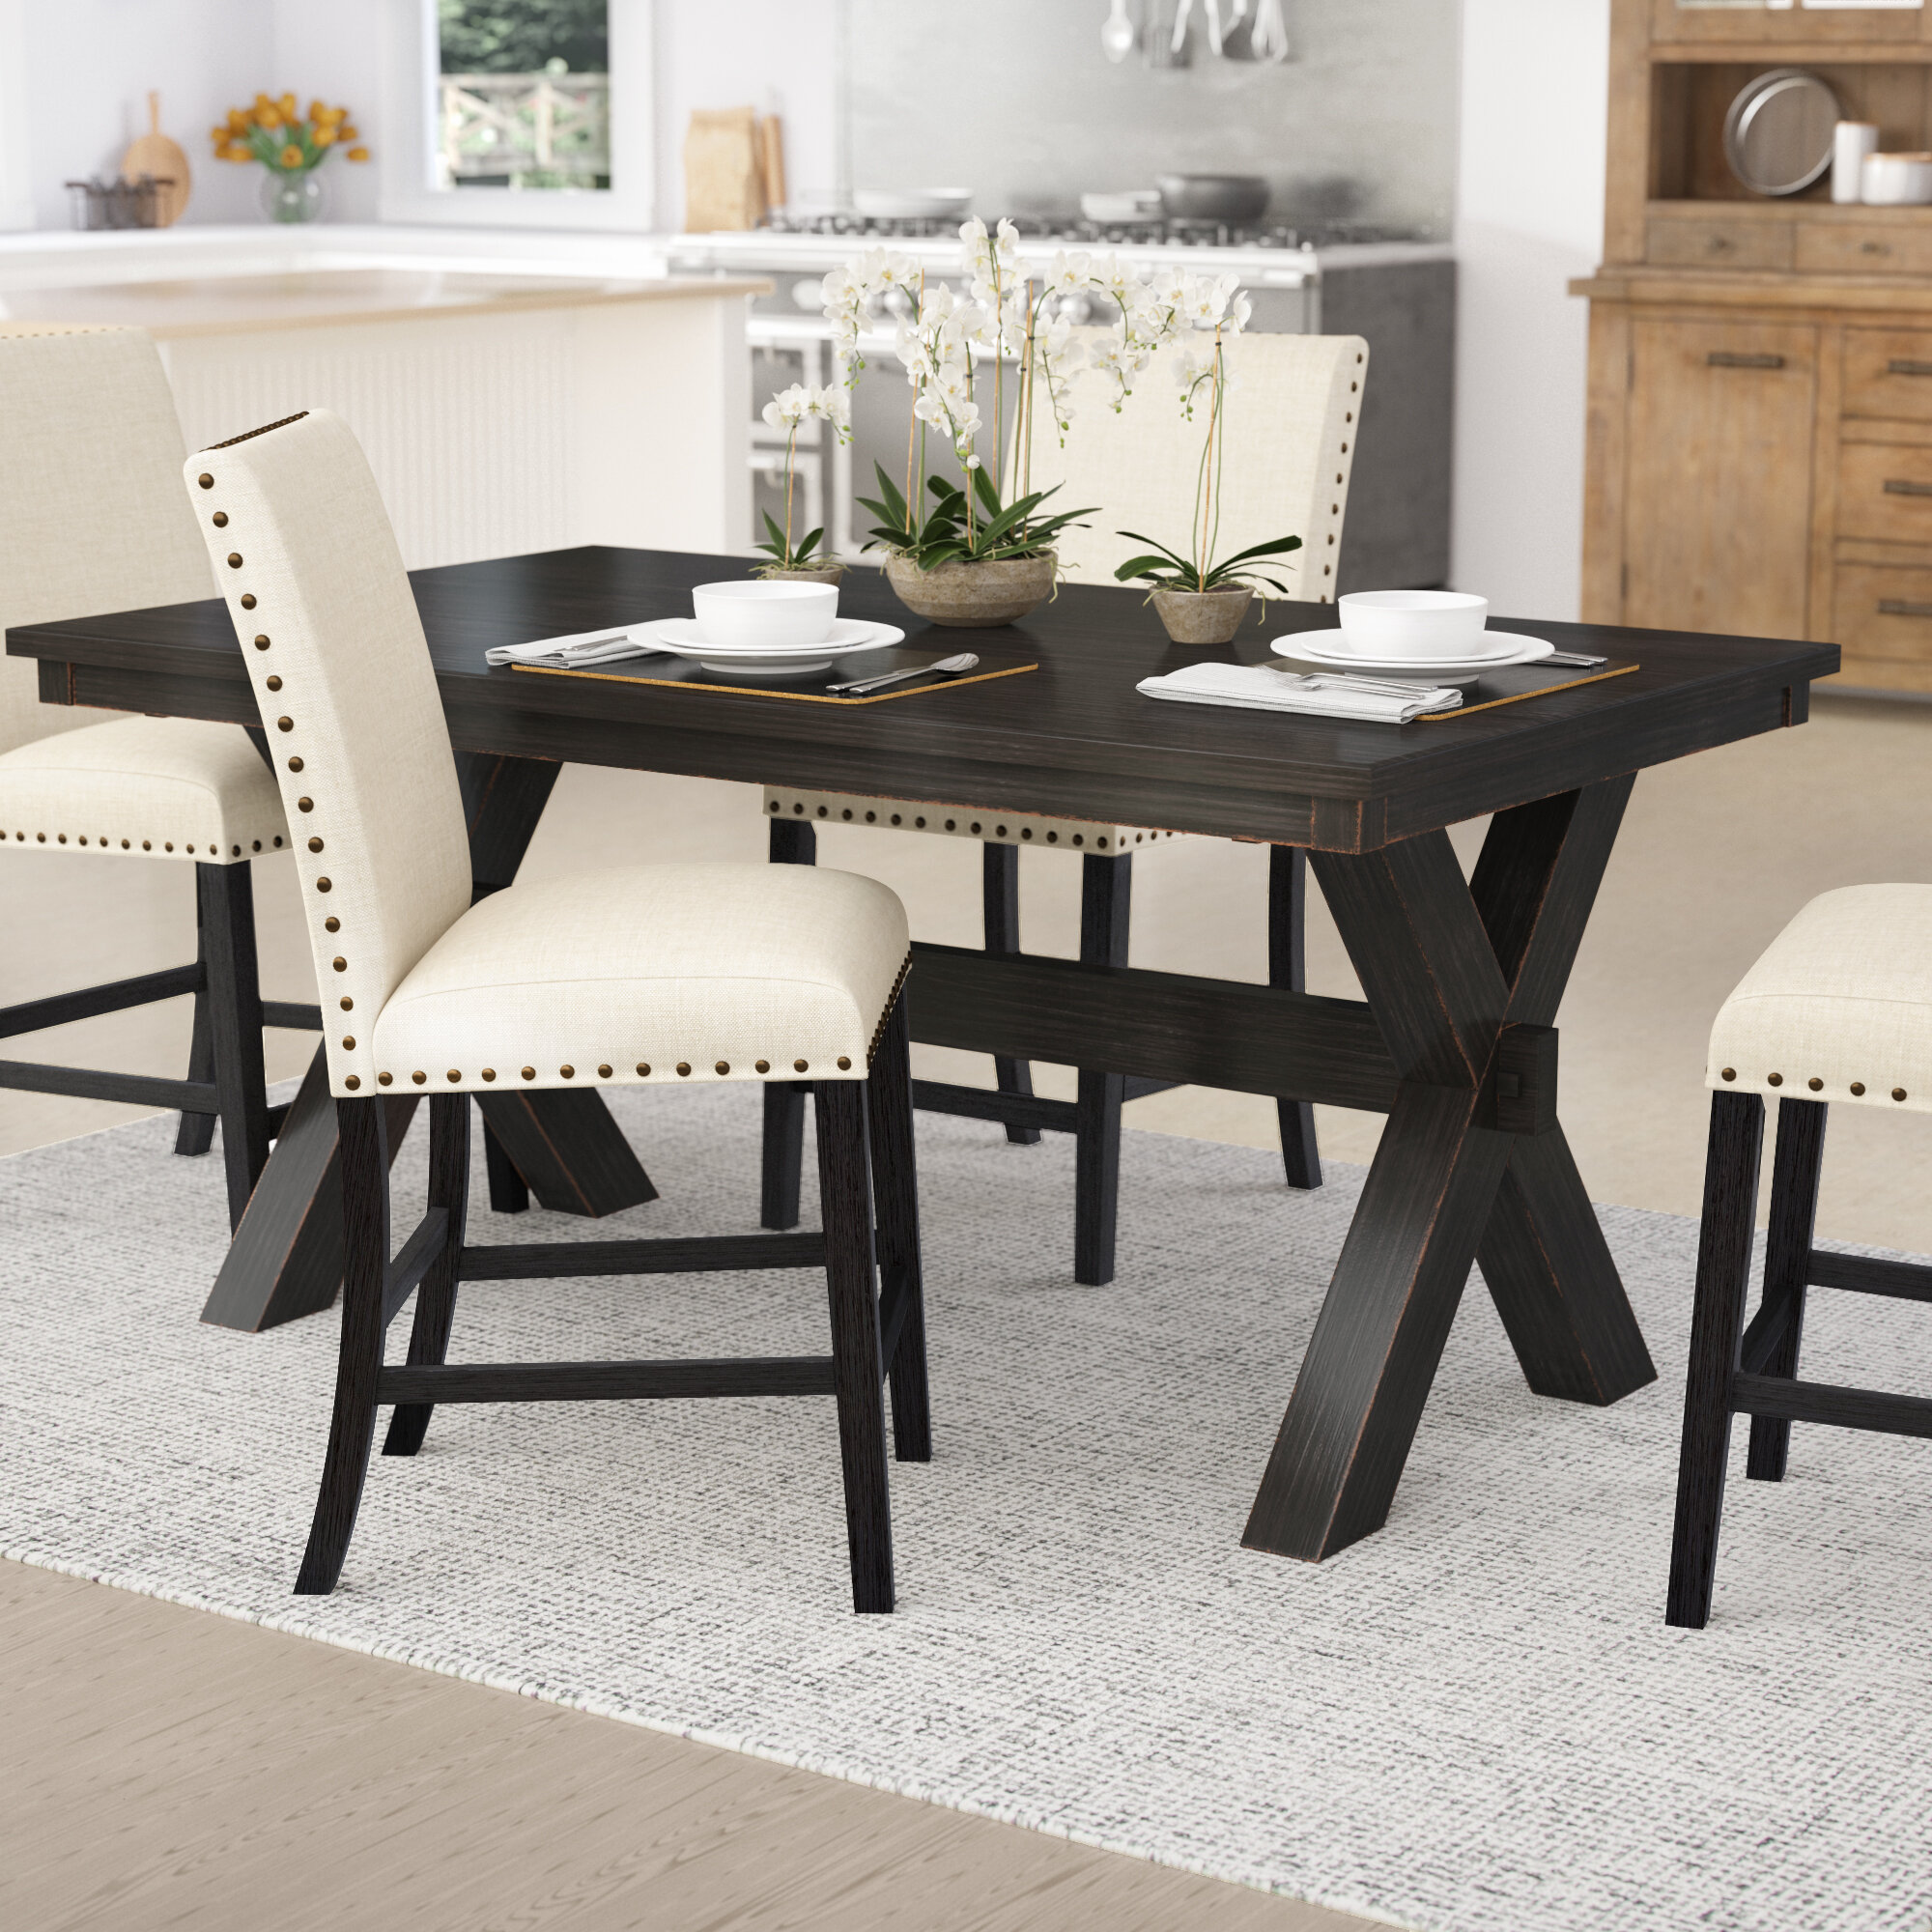 Laurel foundry modern farmhouse manitou transitional dining table reviews wayfair